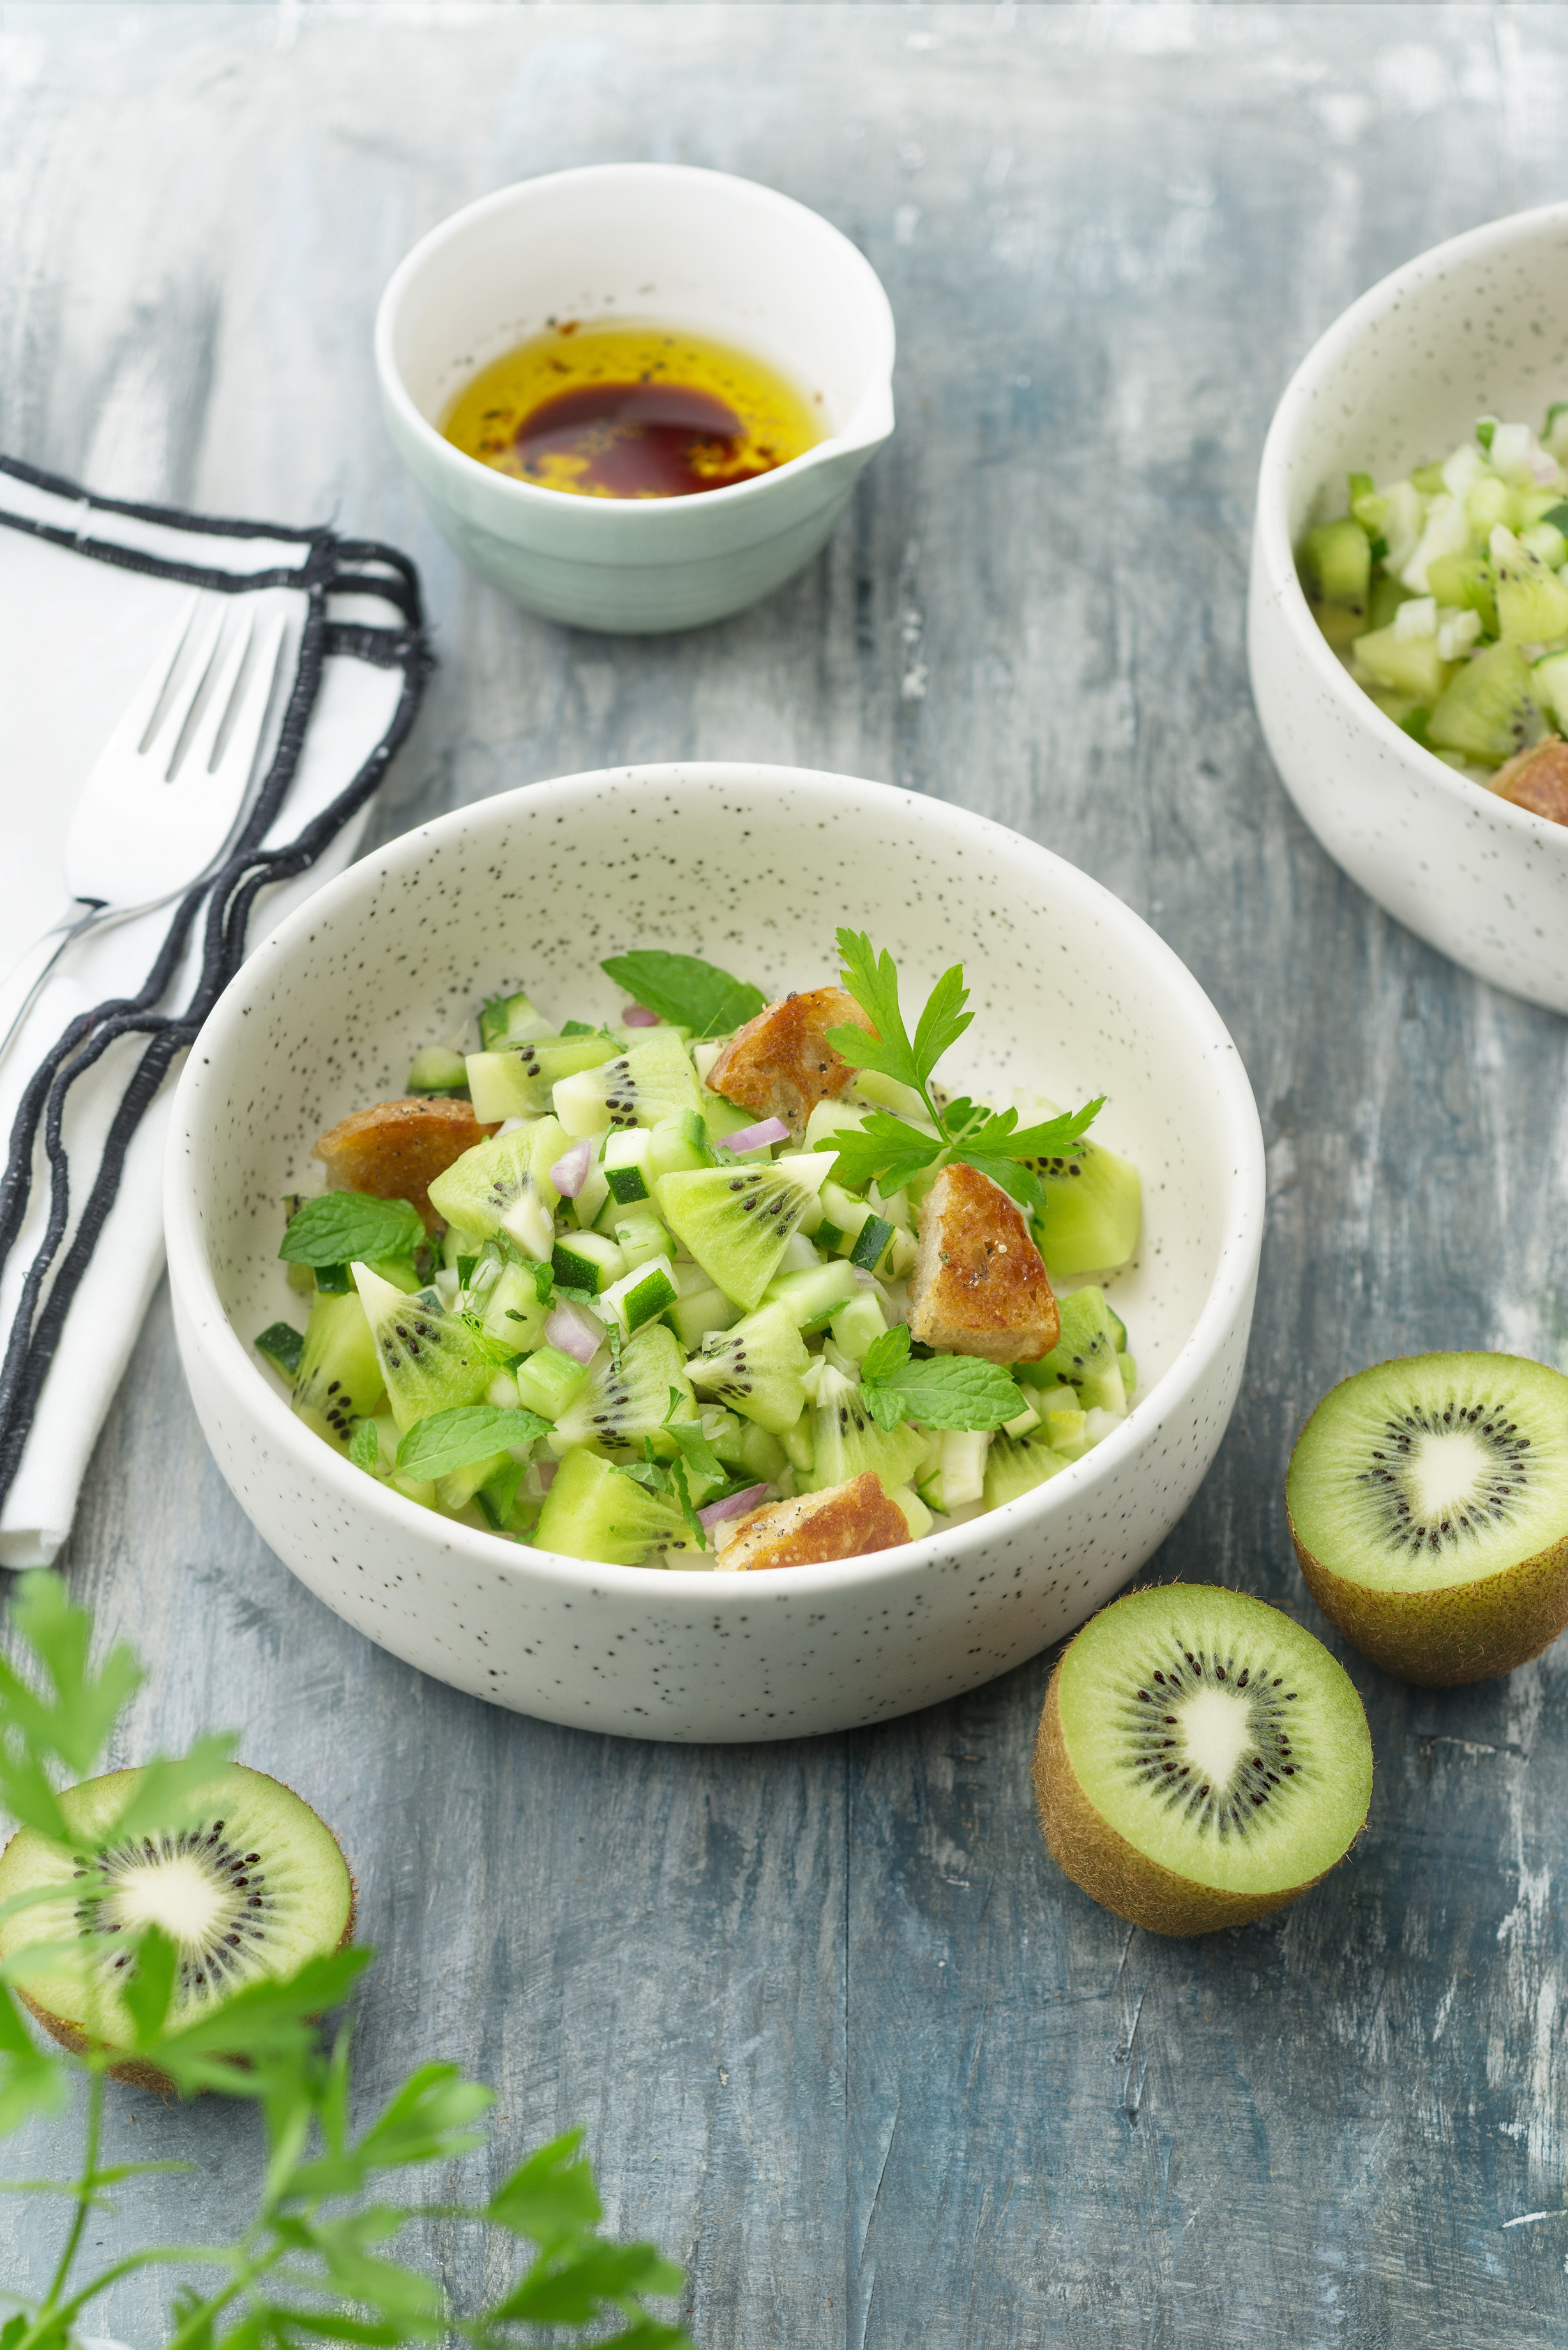 Oscar® kiwi fruits and vegetable tartar